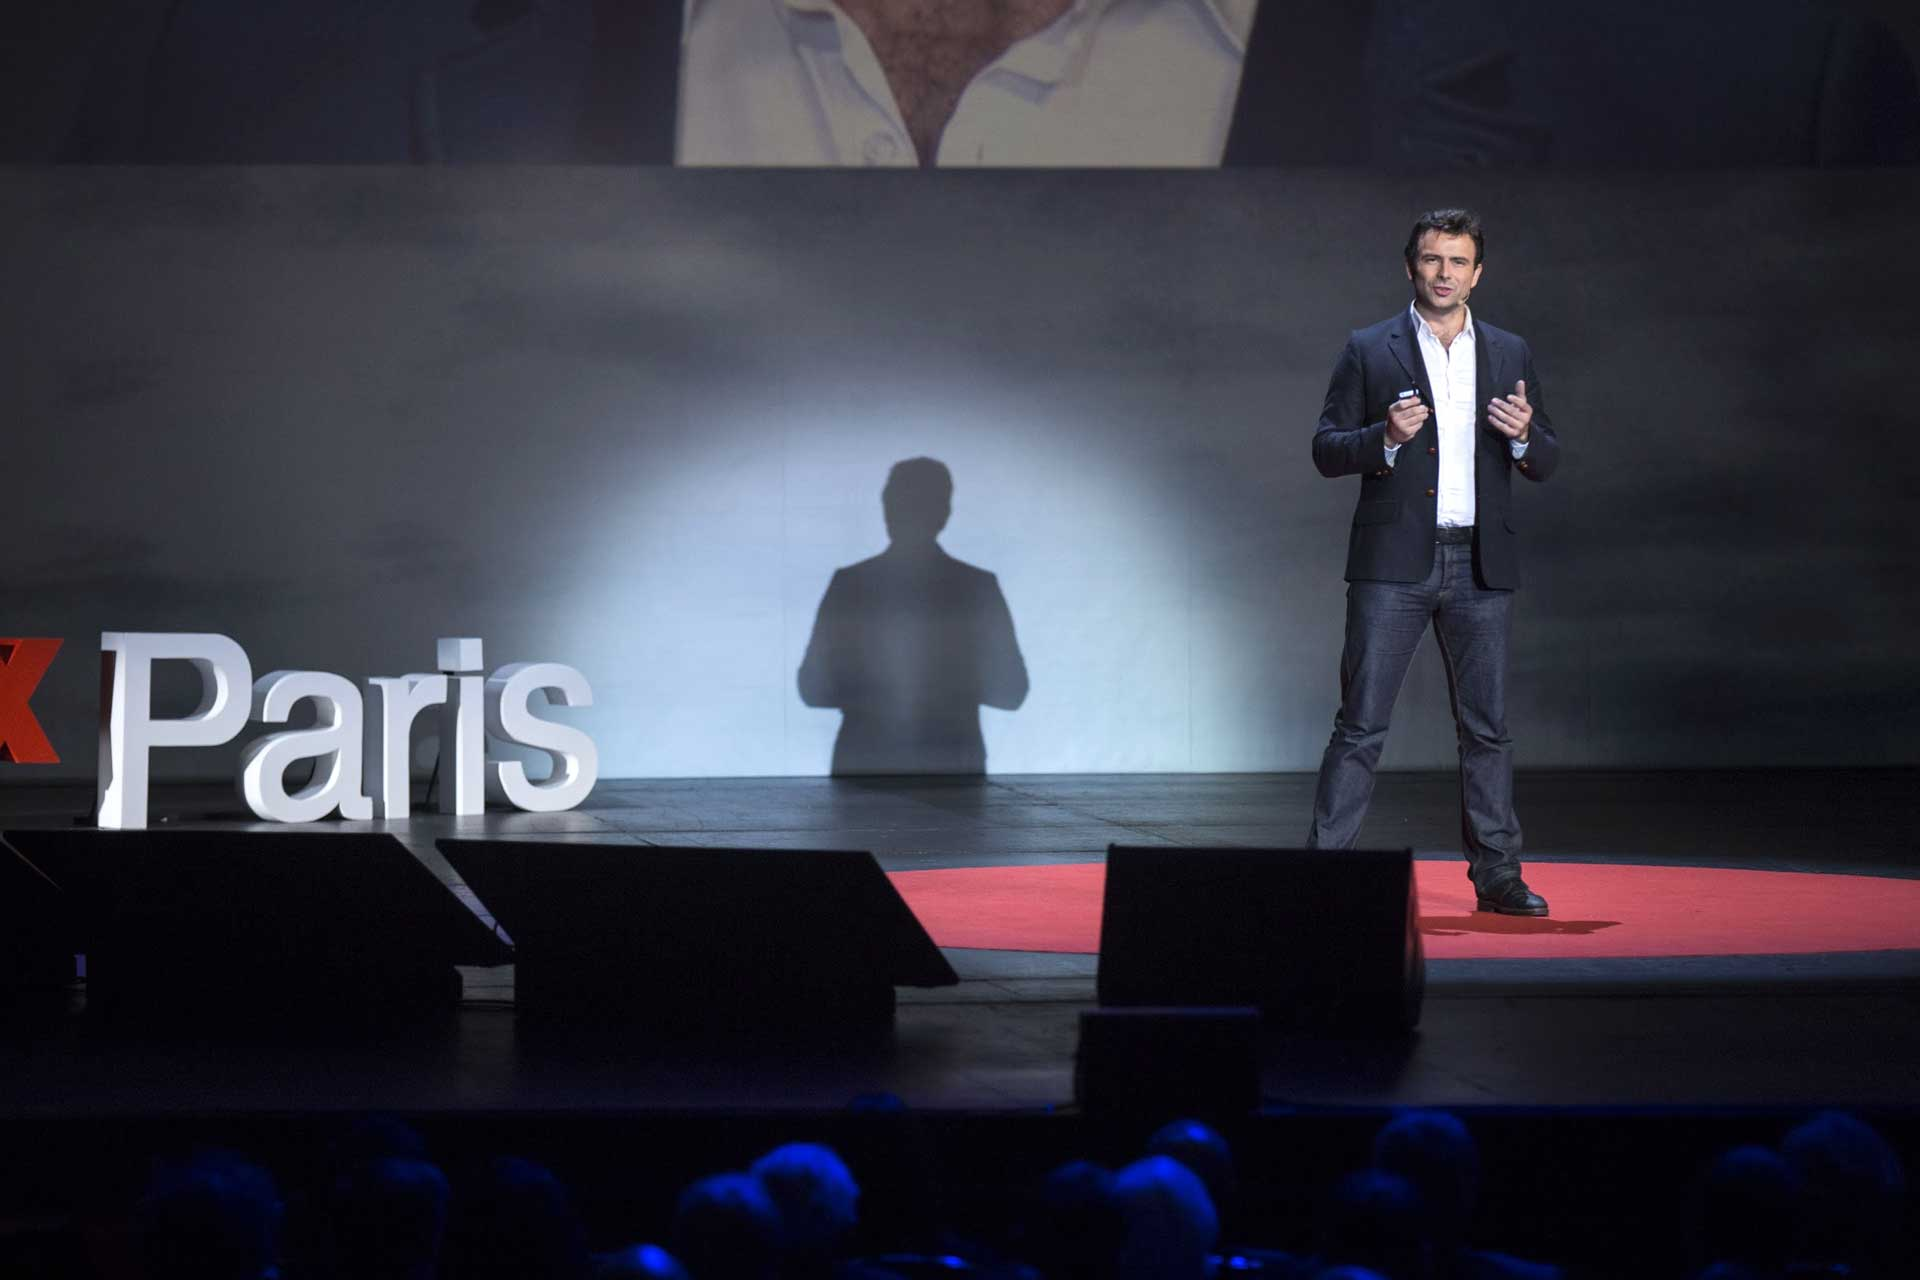 conference-TEDxParis-2014-22.jpg